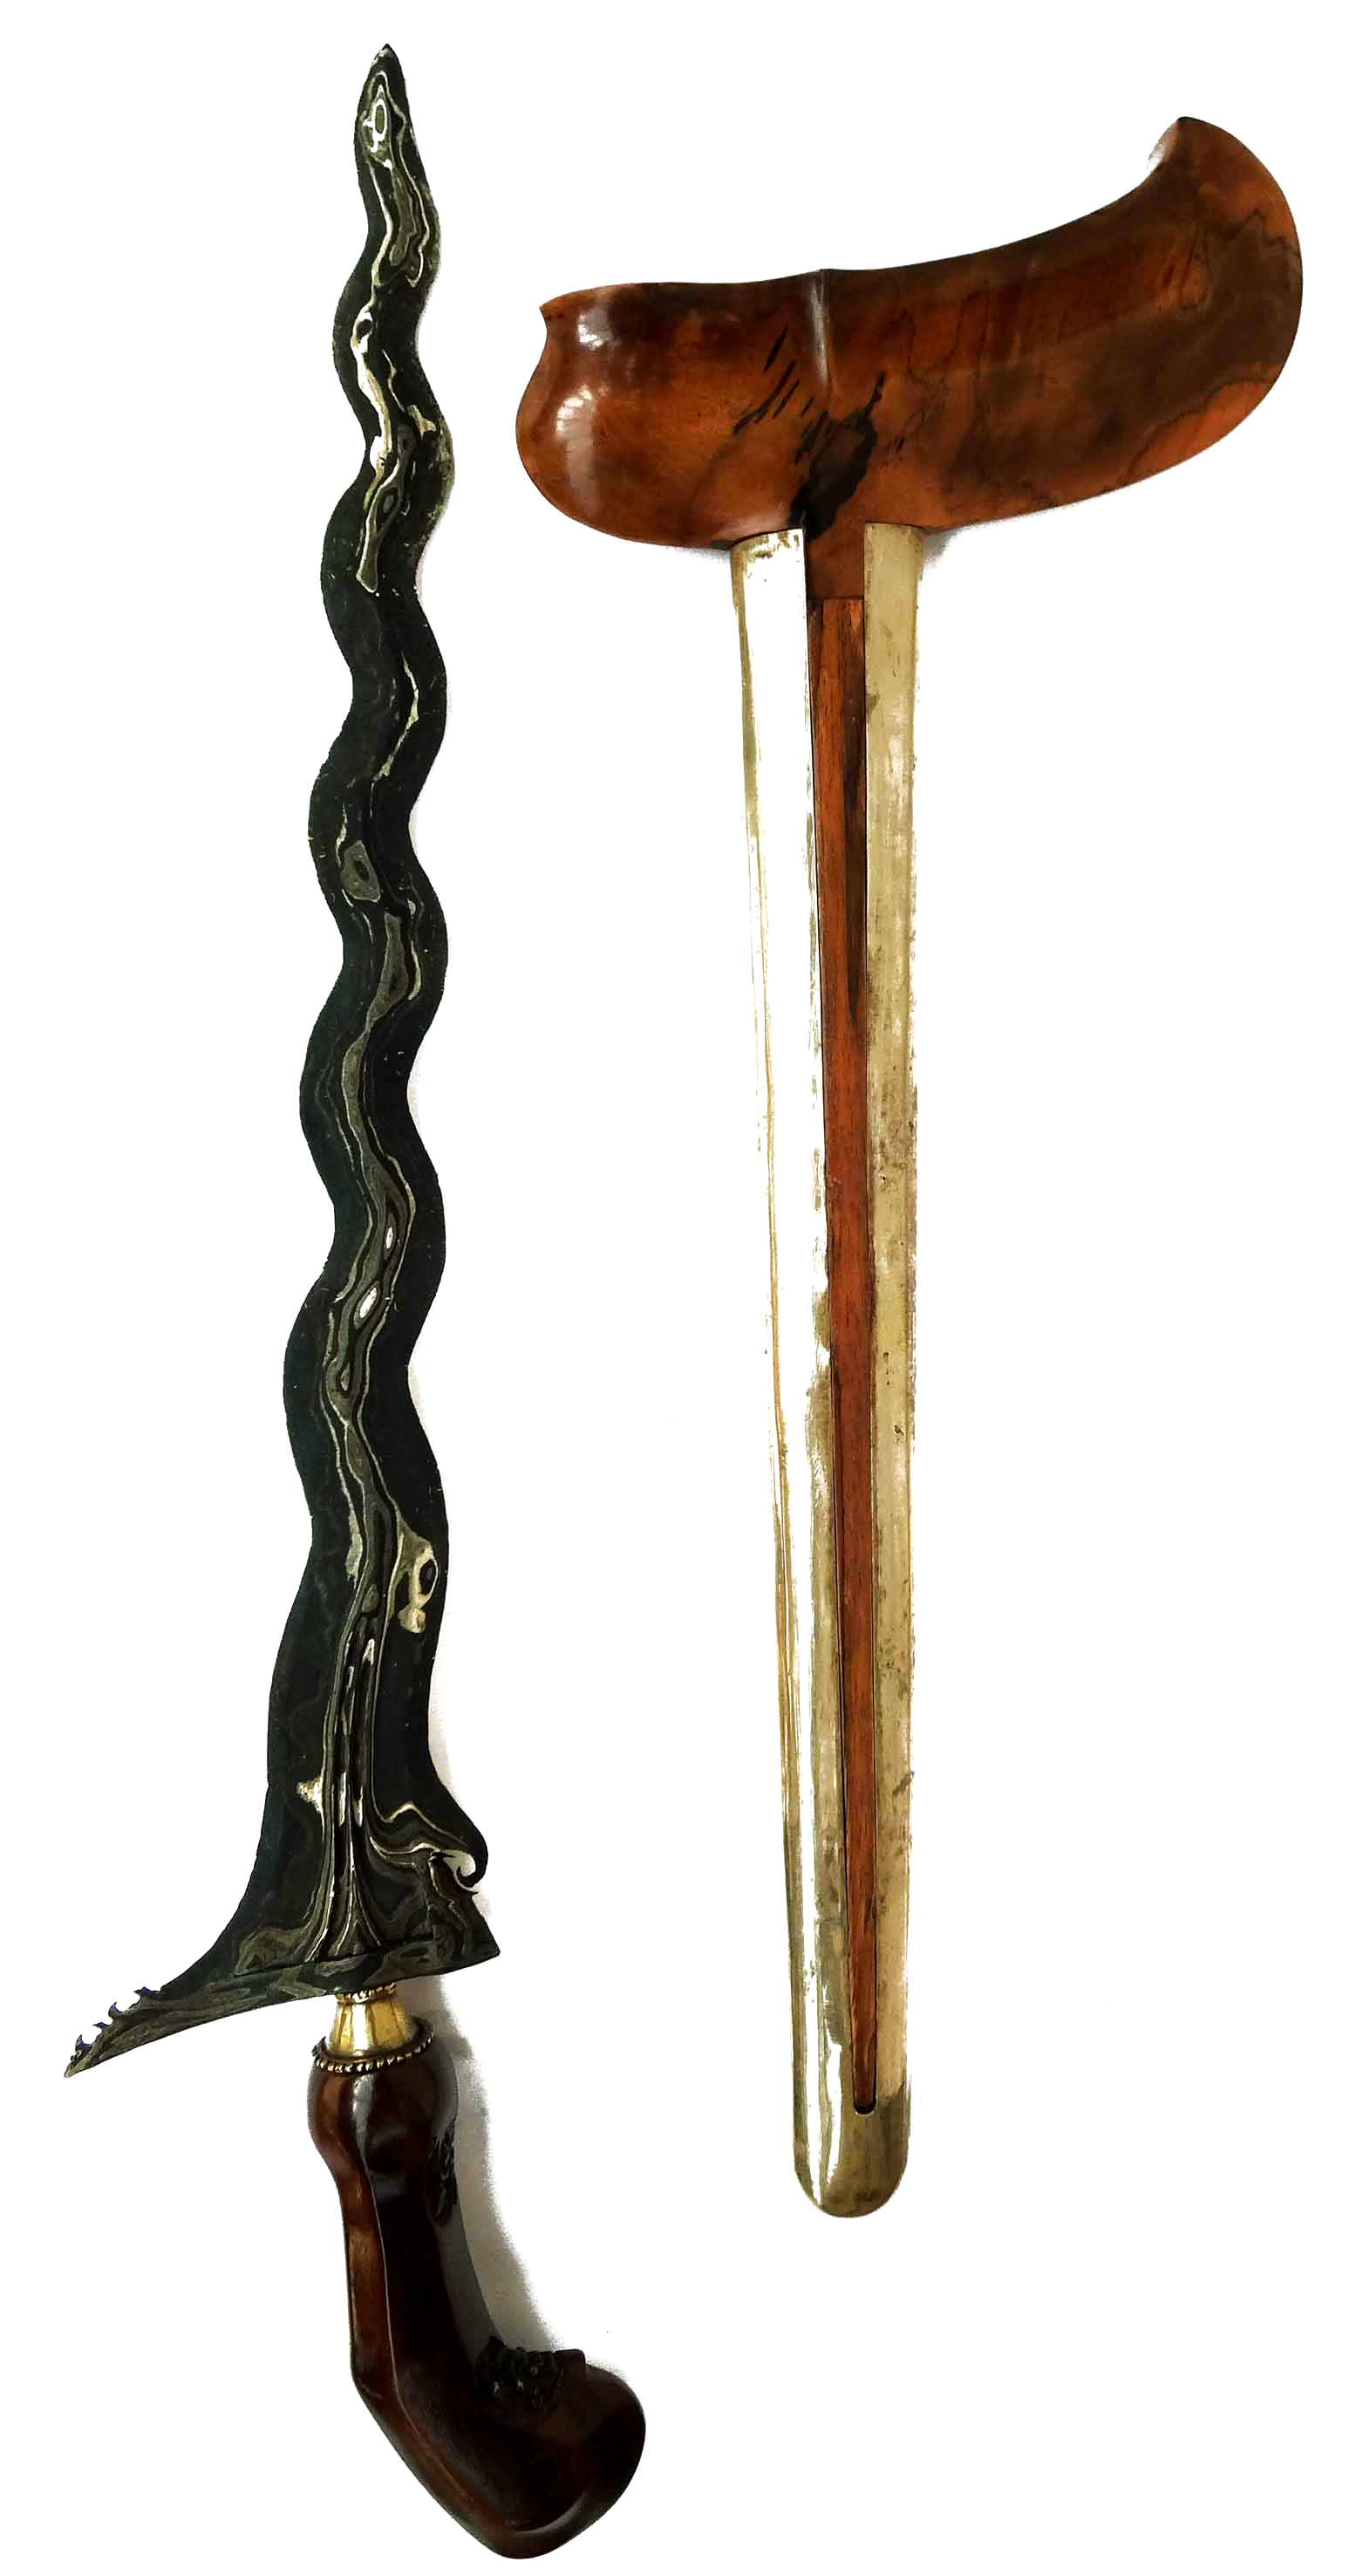 Keris Pajang Sengkelat with Pamor Kulit Semangka and Sacred Wooden Hilt and Sheath